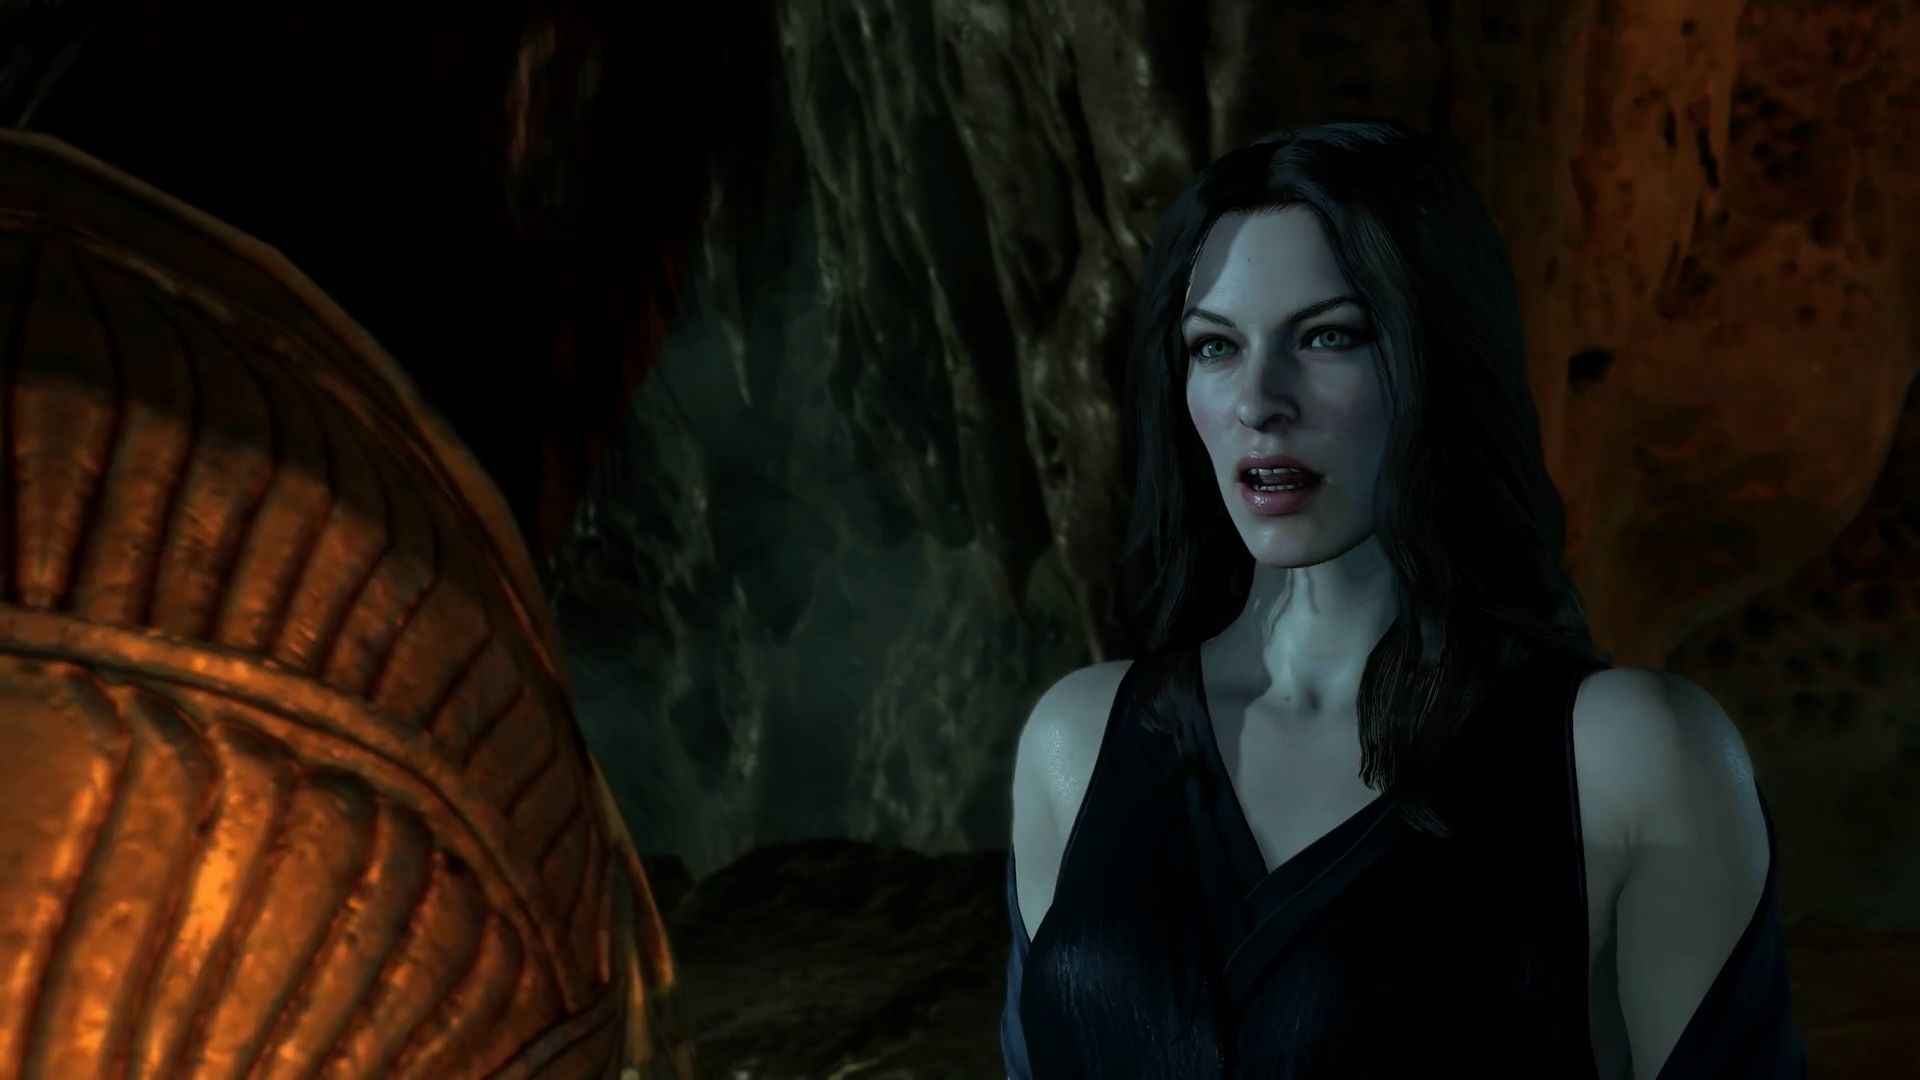 middle-earth-shadow-of-war-monolith-productions-warner-bros-action-rpg-playstation-4-ps4-xbox-one-pc-steam-review